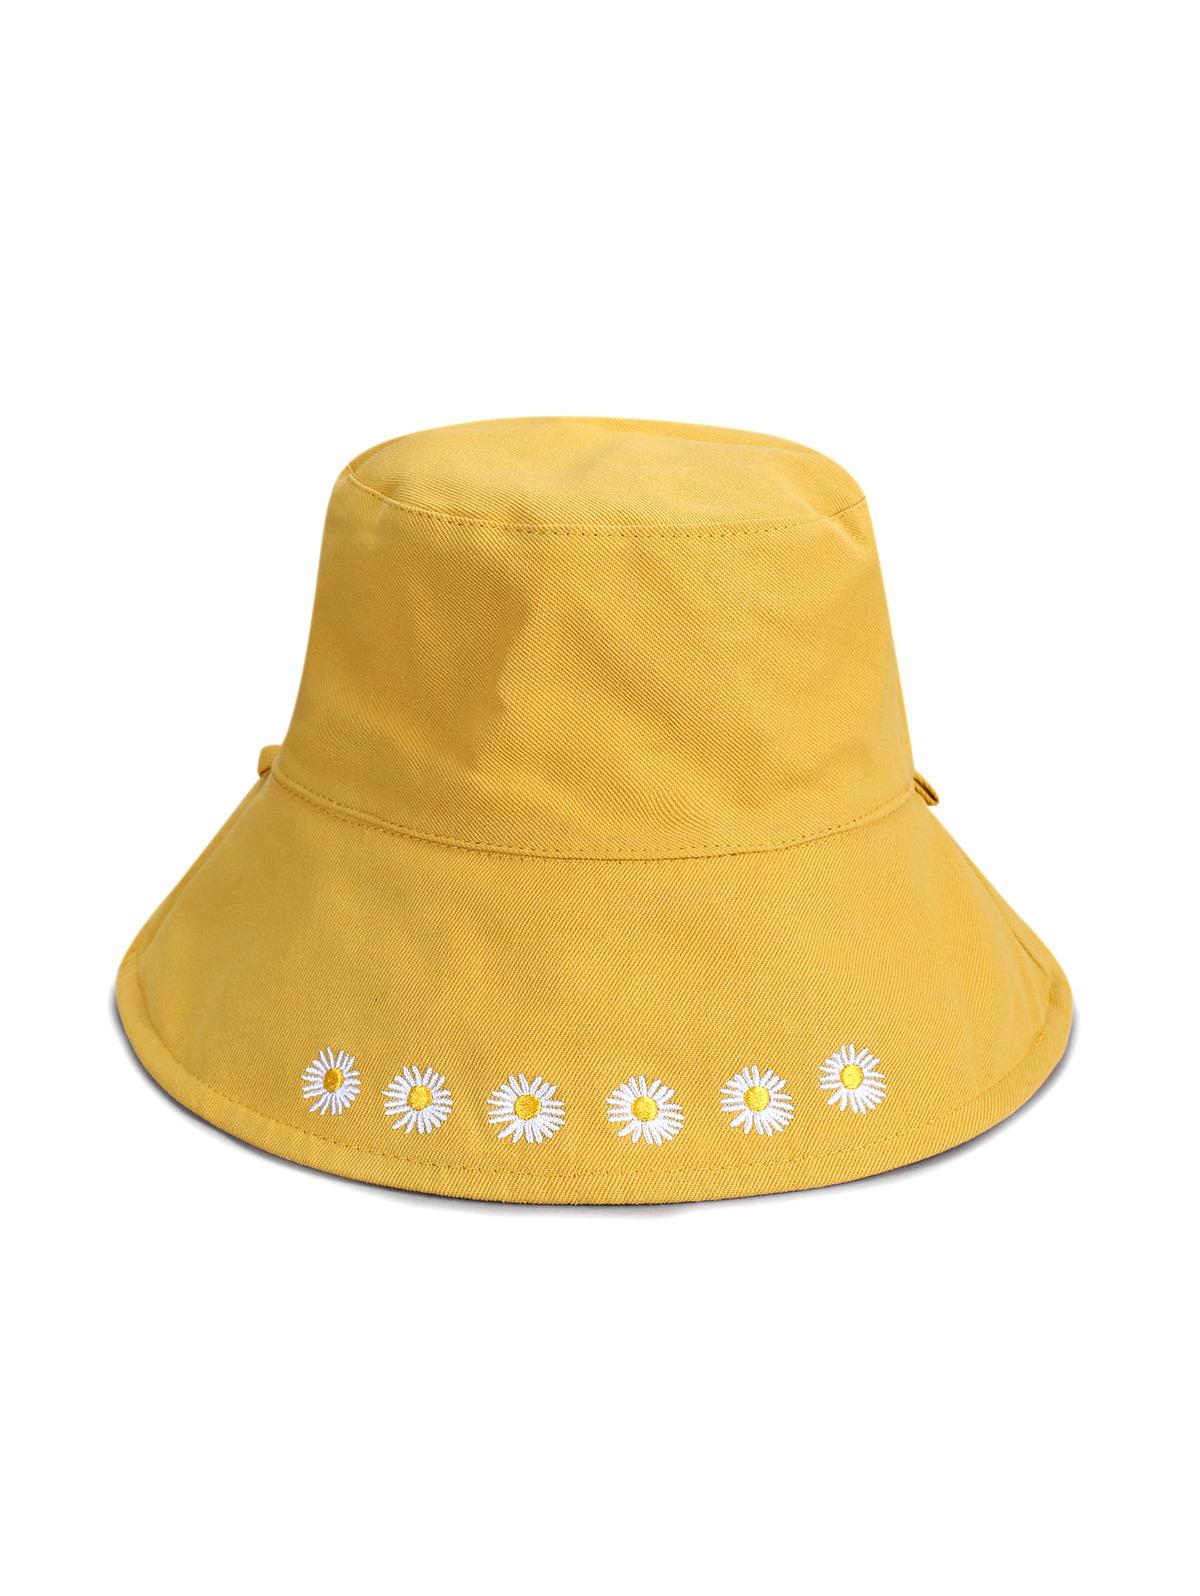 Daisy Embroidery Foldable Wide Brim Bucket Hat